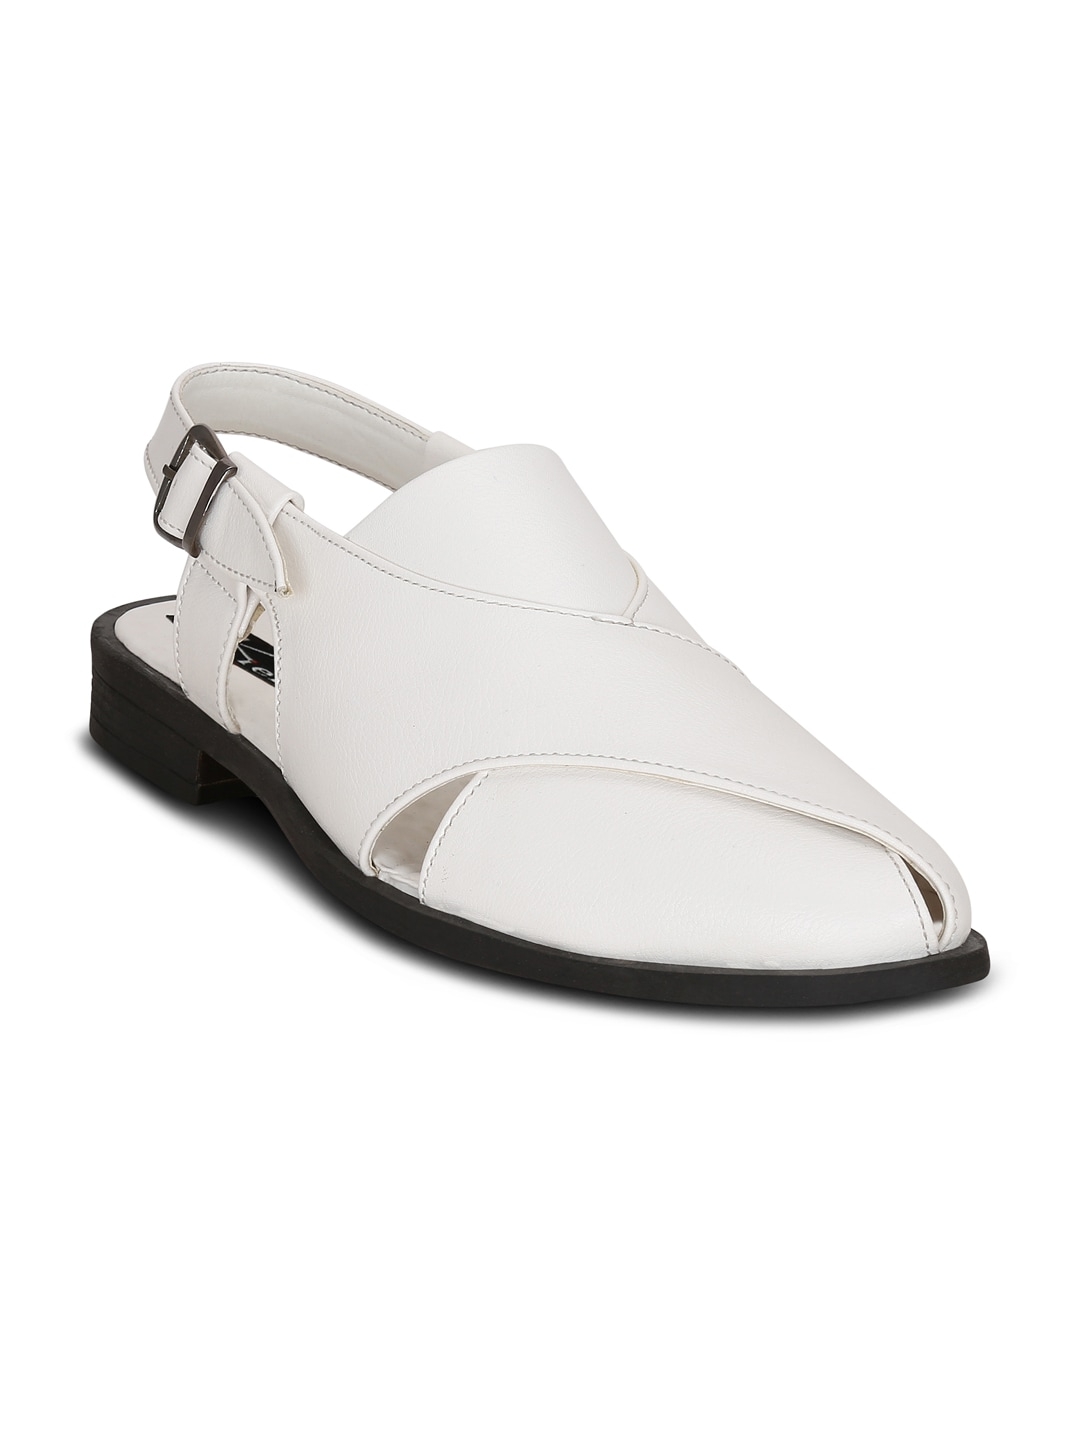 075bc9a60988 White Sandals - Buy White Sandals Online in India